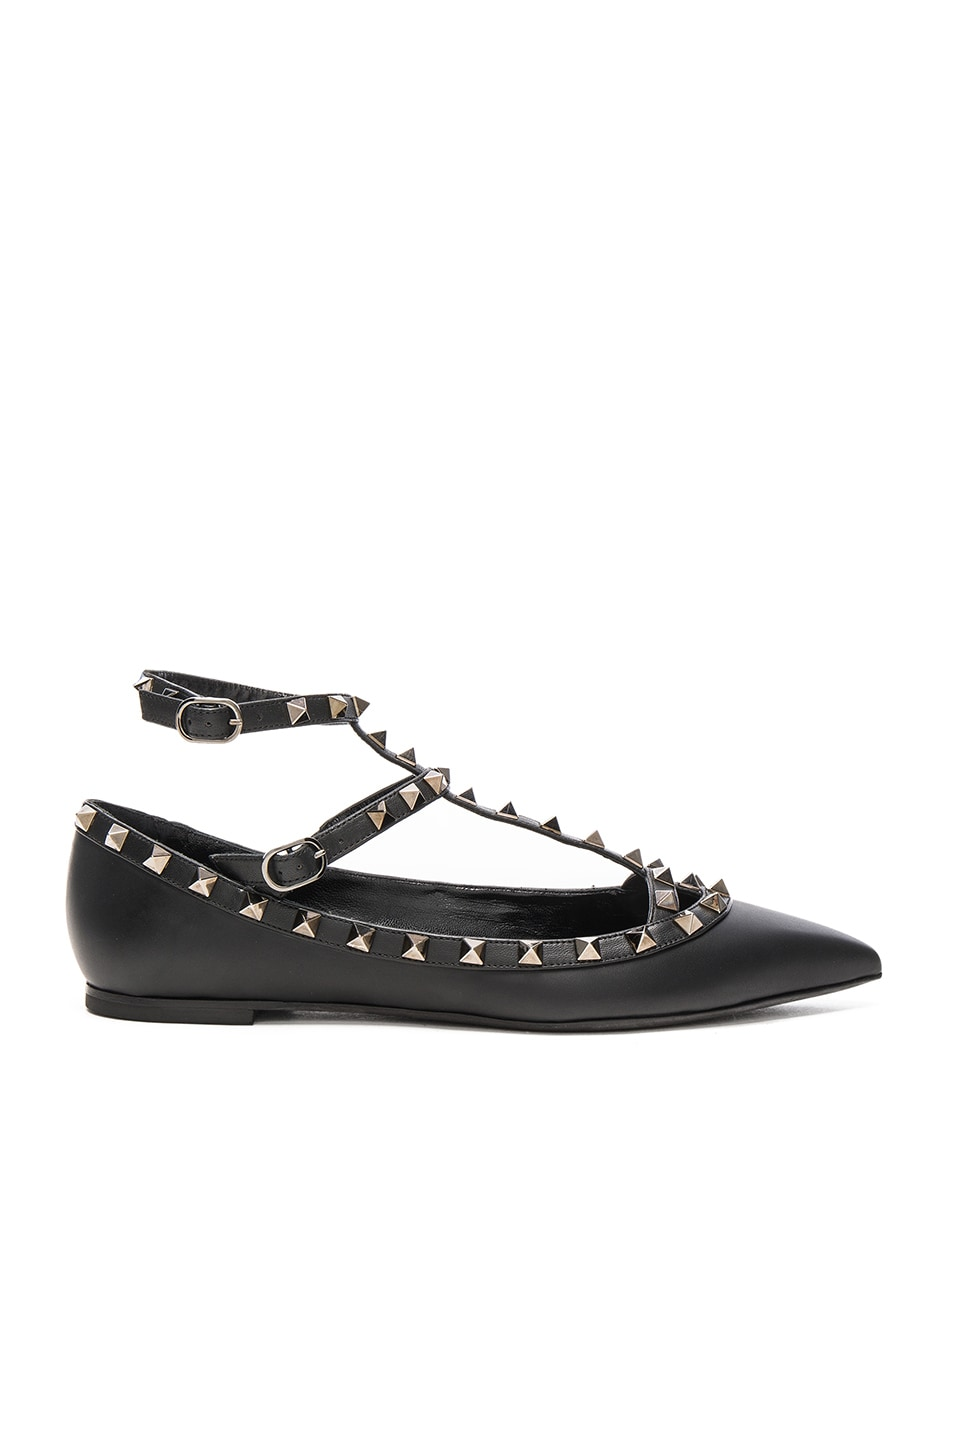 Image 1 of Valentino Rockstud Noir Leather Cage Flats in Ruthenium Black